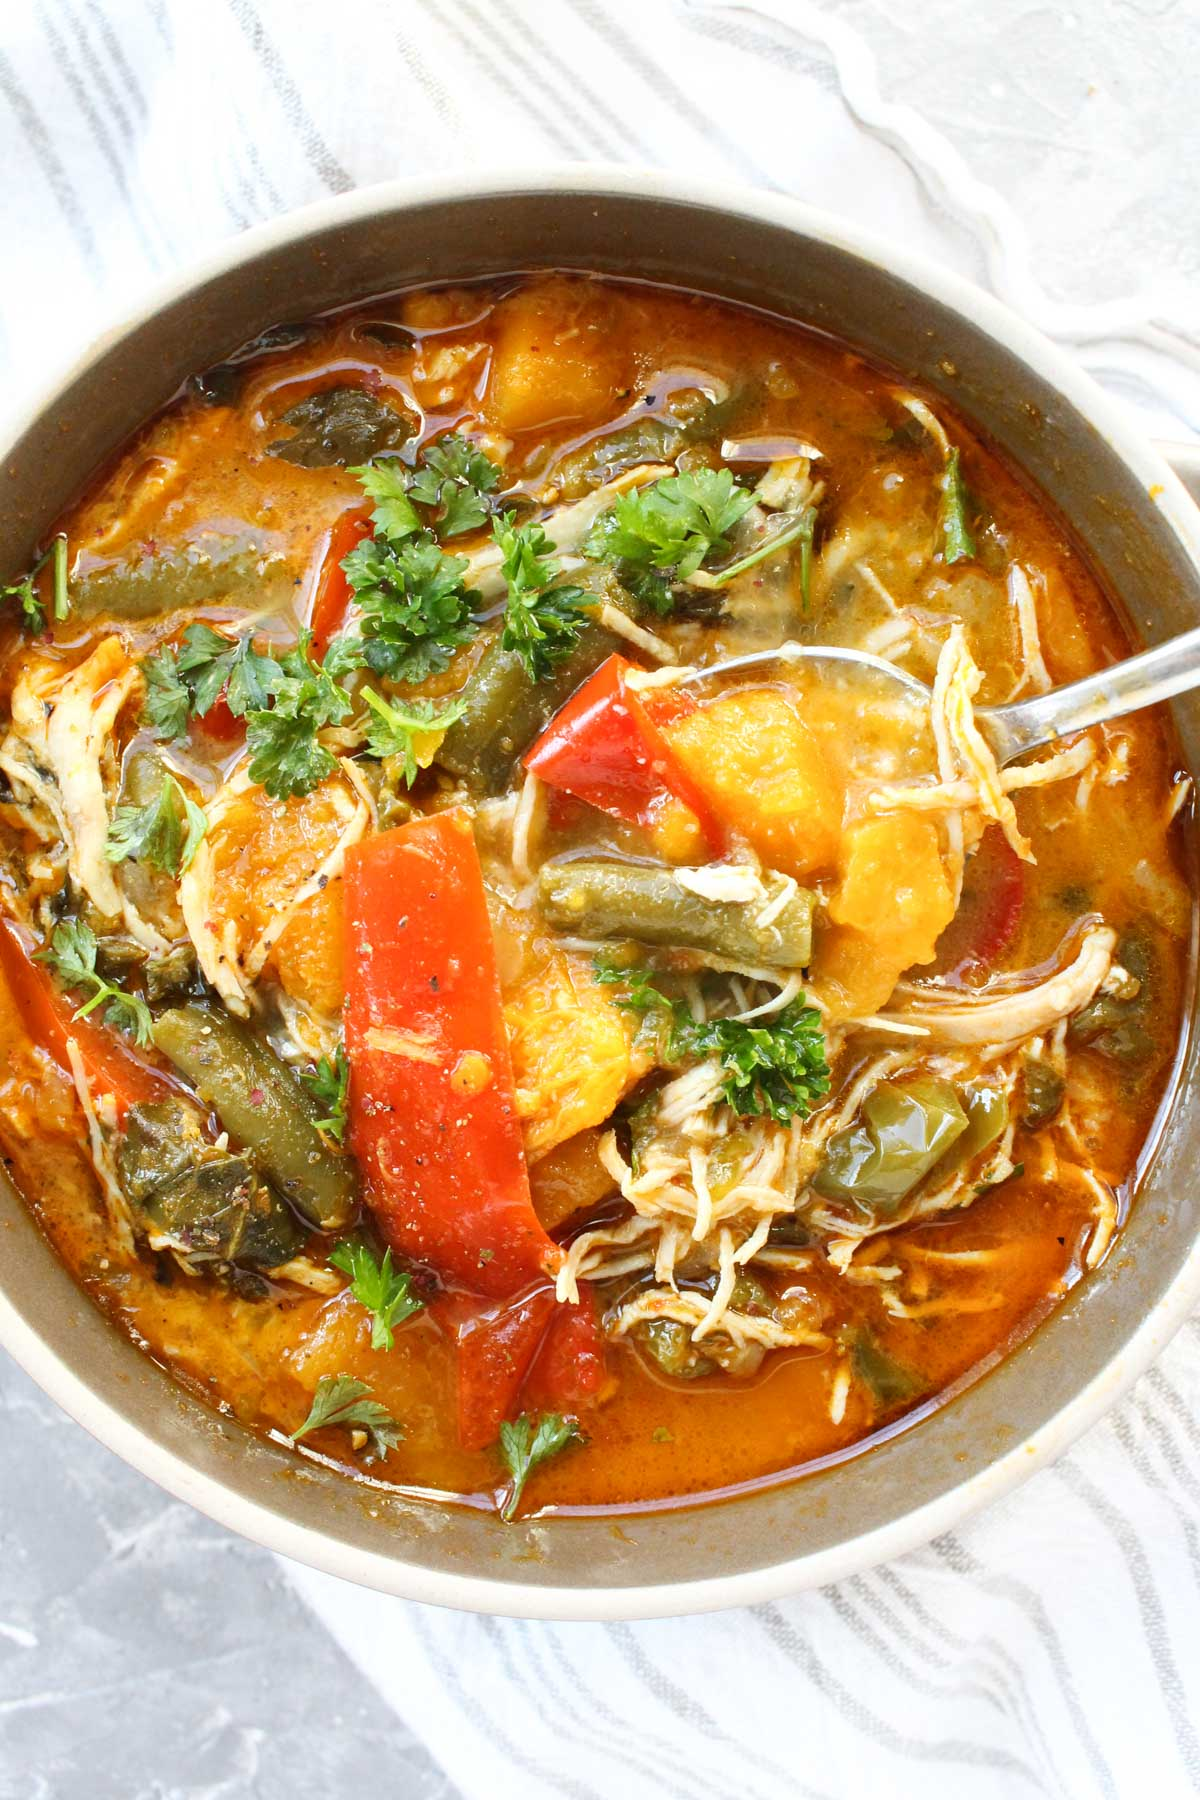 Bowl of red curry soup with spoon dipped inside.